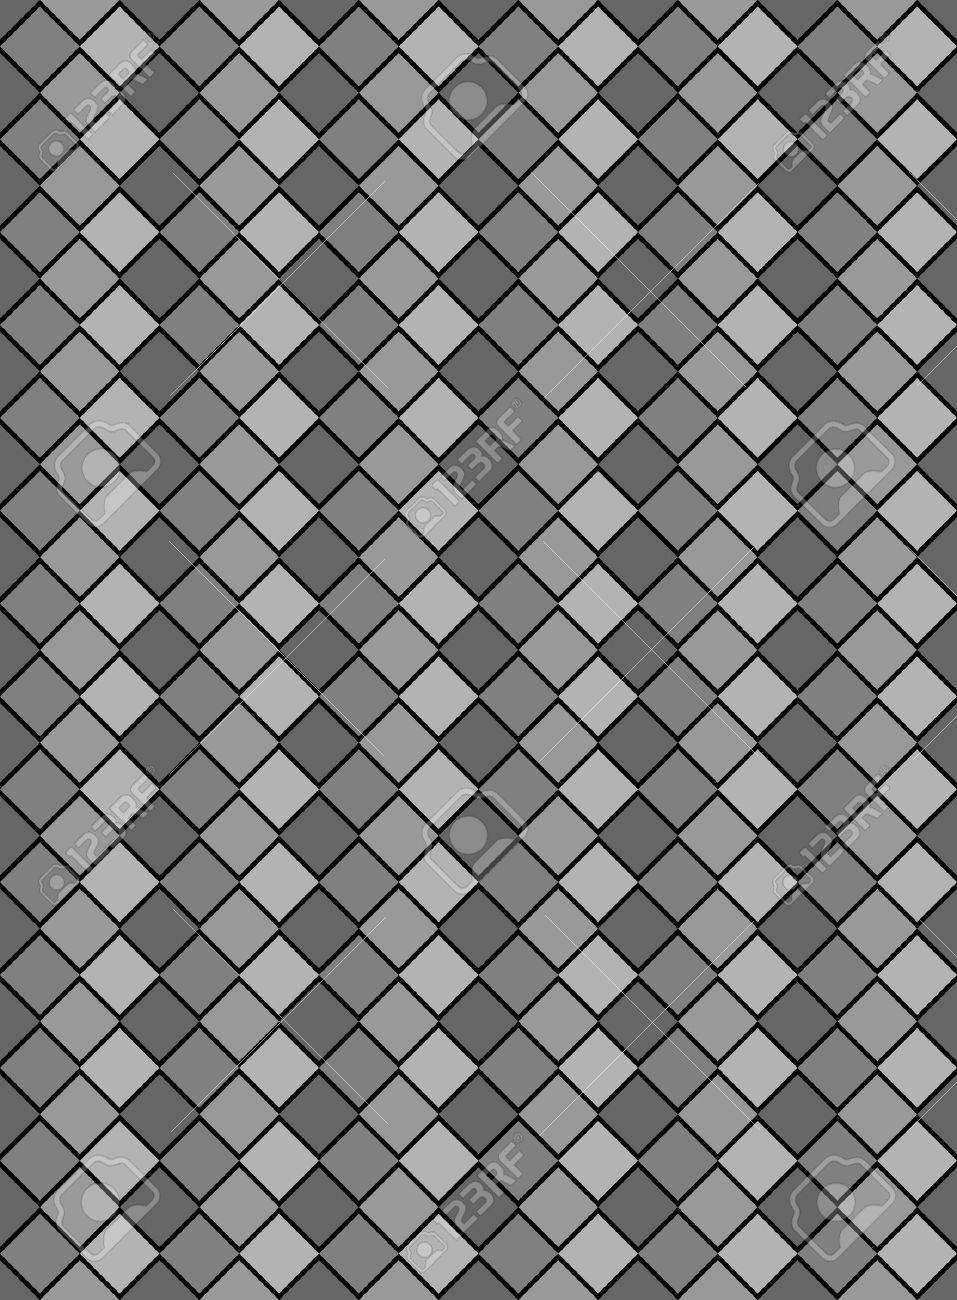 Black White And Gray Variegated Diamond Snake Style Wallpaper Texture Pattern Stock Vector